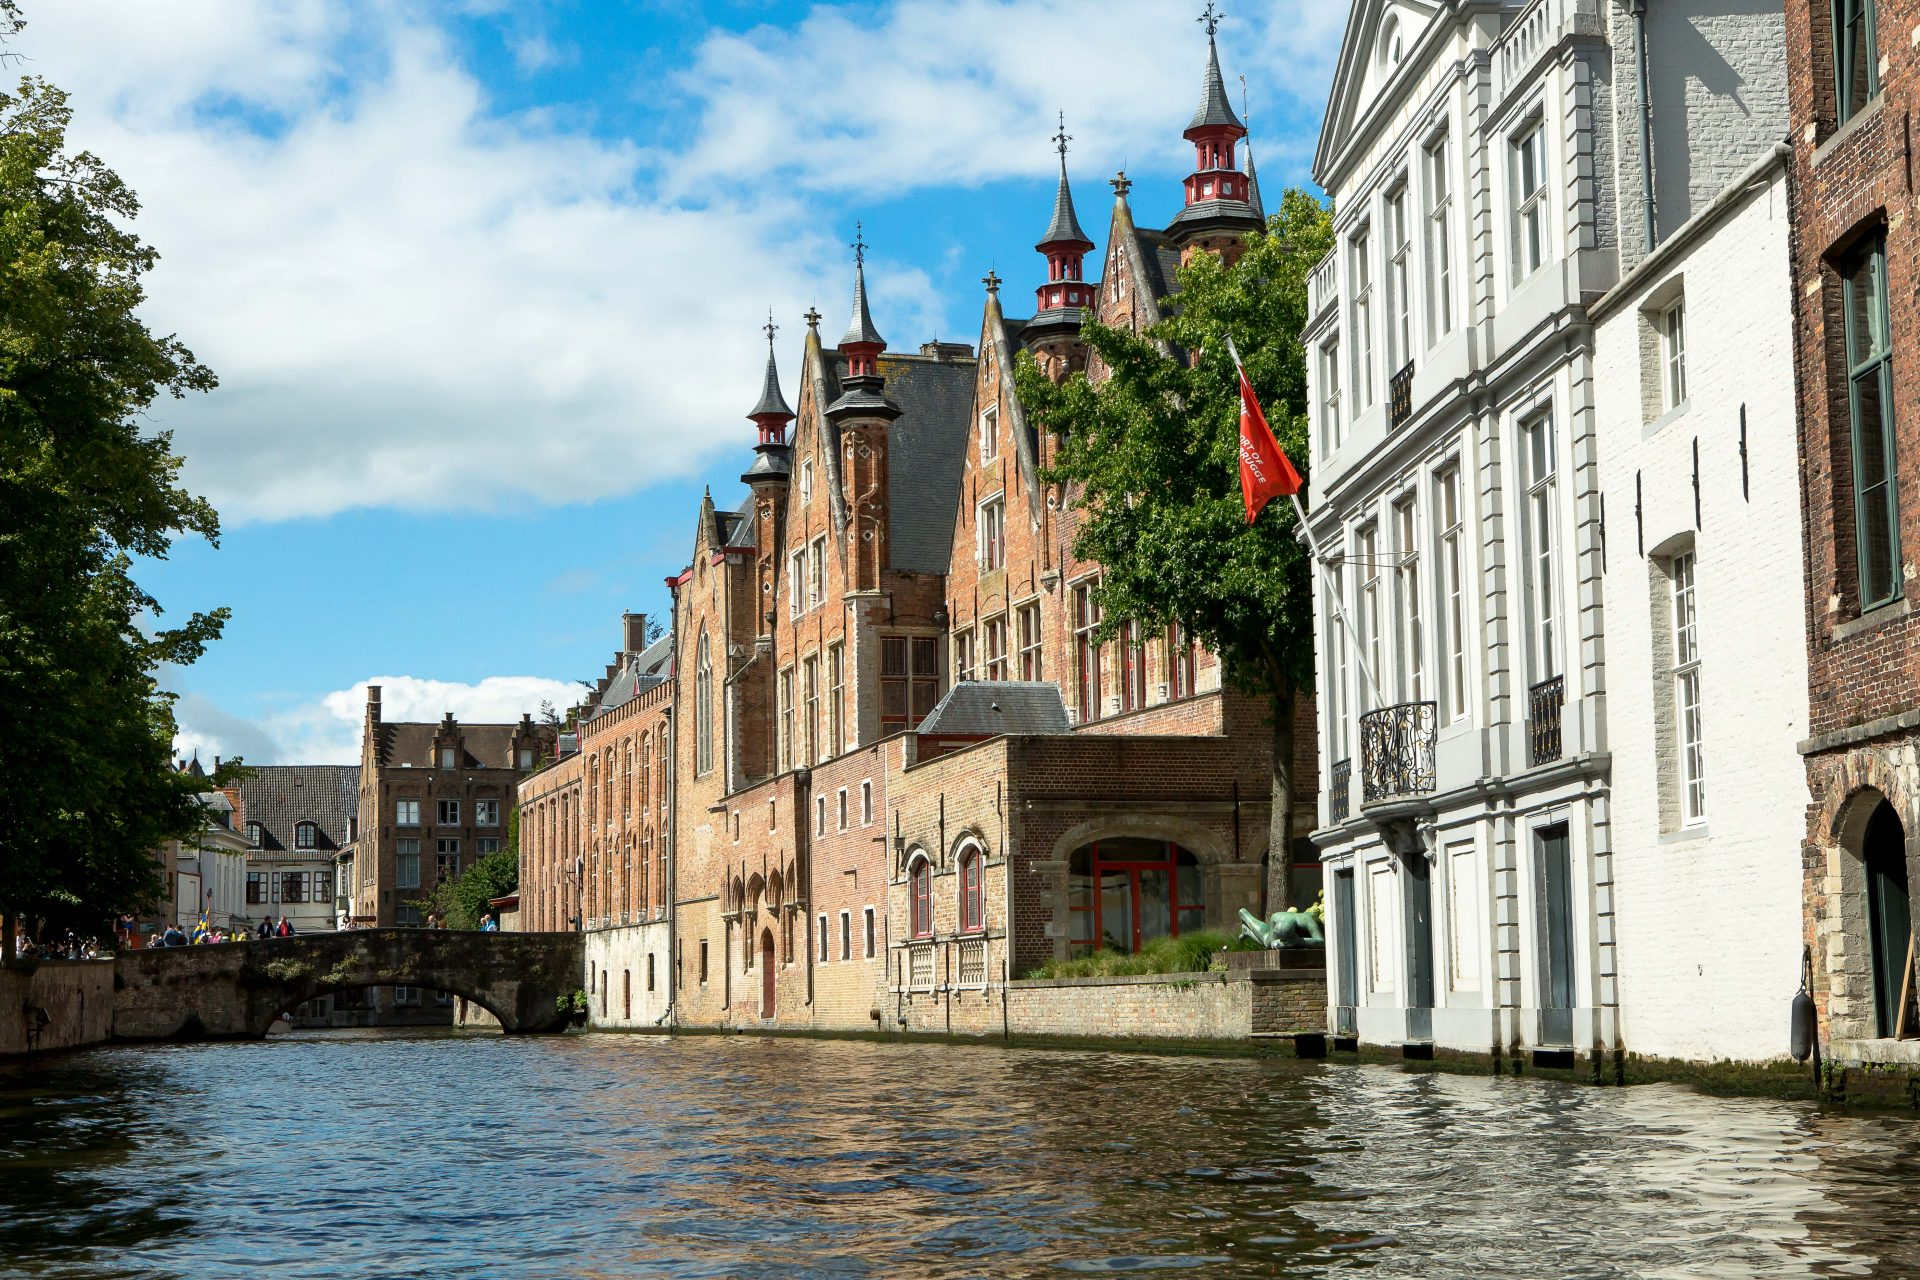 View of Bruges' medieval buildings from a boat on one of the cities canals. (Photo: Hermann Rohr for Nspirement)